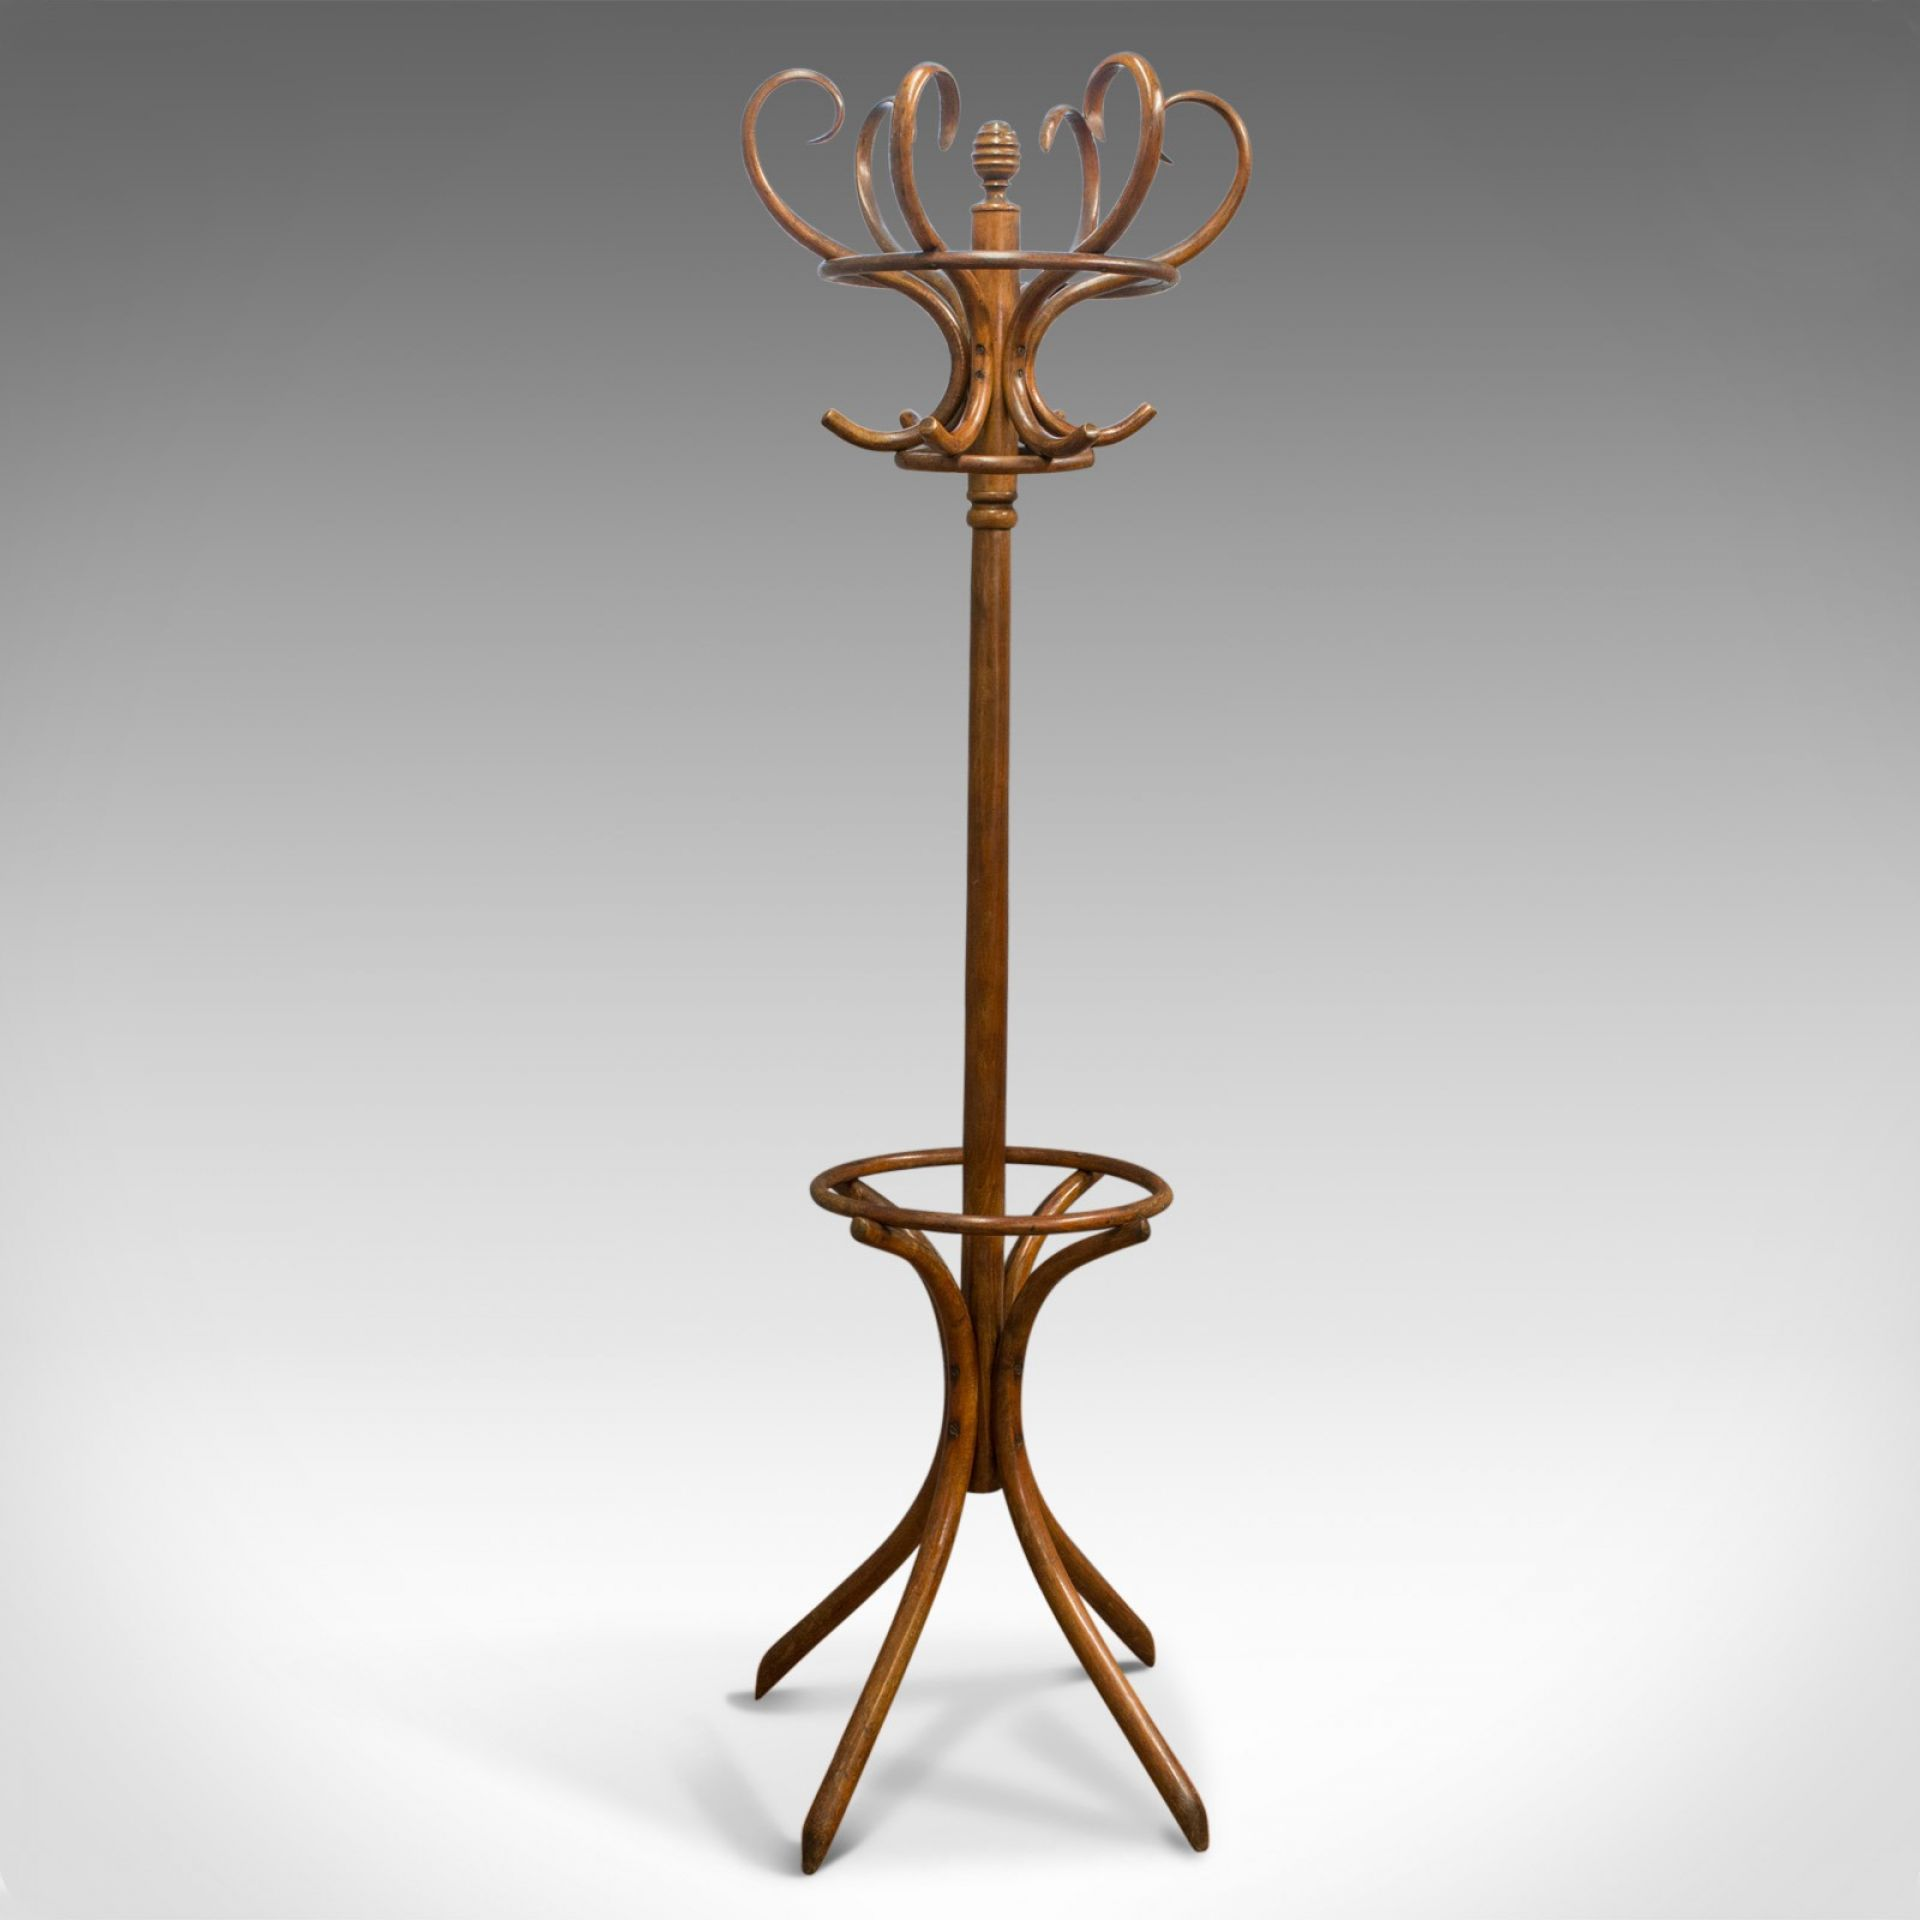 Antique Bentwood Coat Rack, Hall Stand, Thonet, Café, Coat Stick Umbrella, c1910